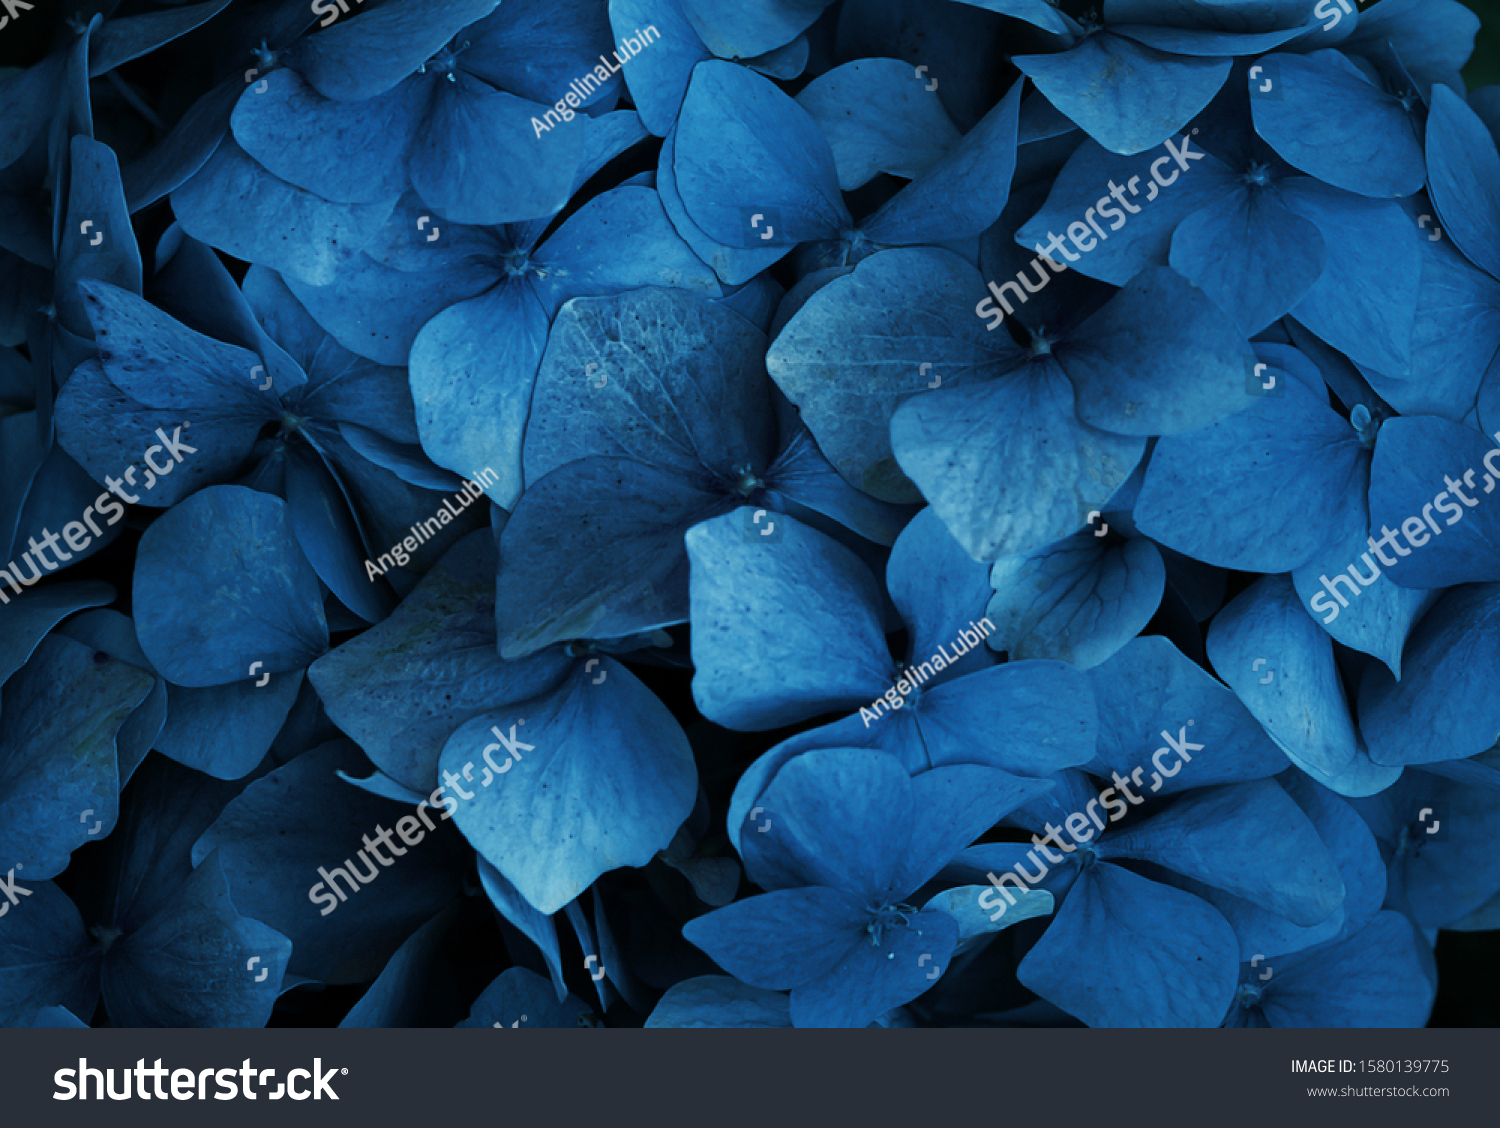 Trend color 2020 classic blue, top view, layout for design.Hydrangea  flower in trendy blue color. Trendy color concept of the year, classic blue background.  #1580139775